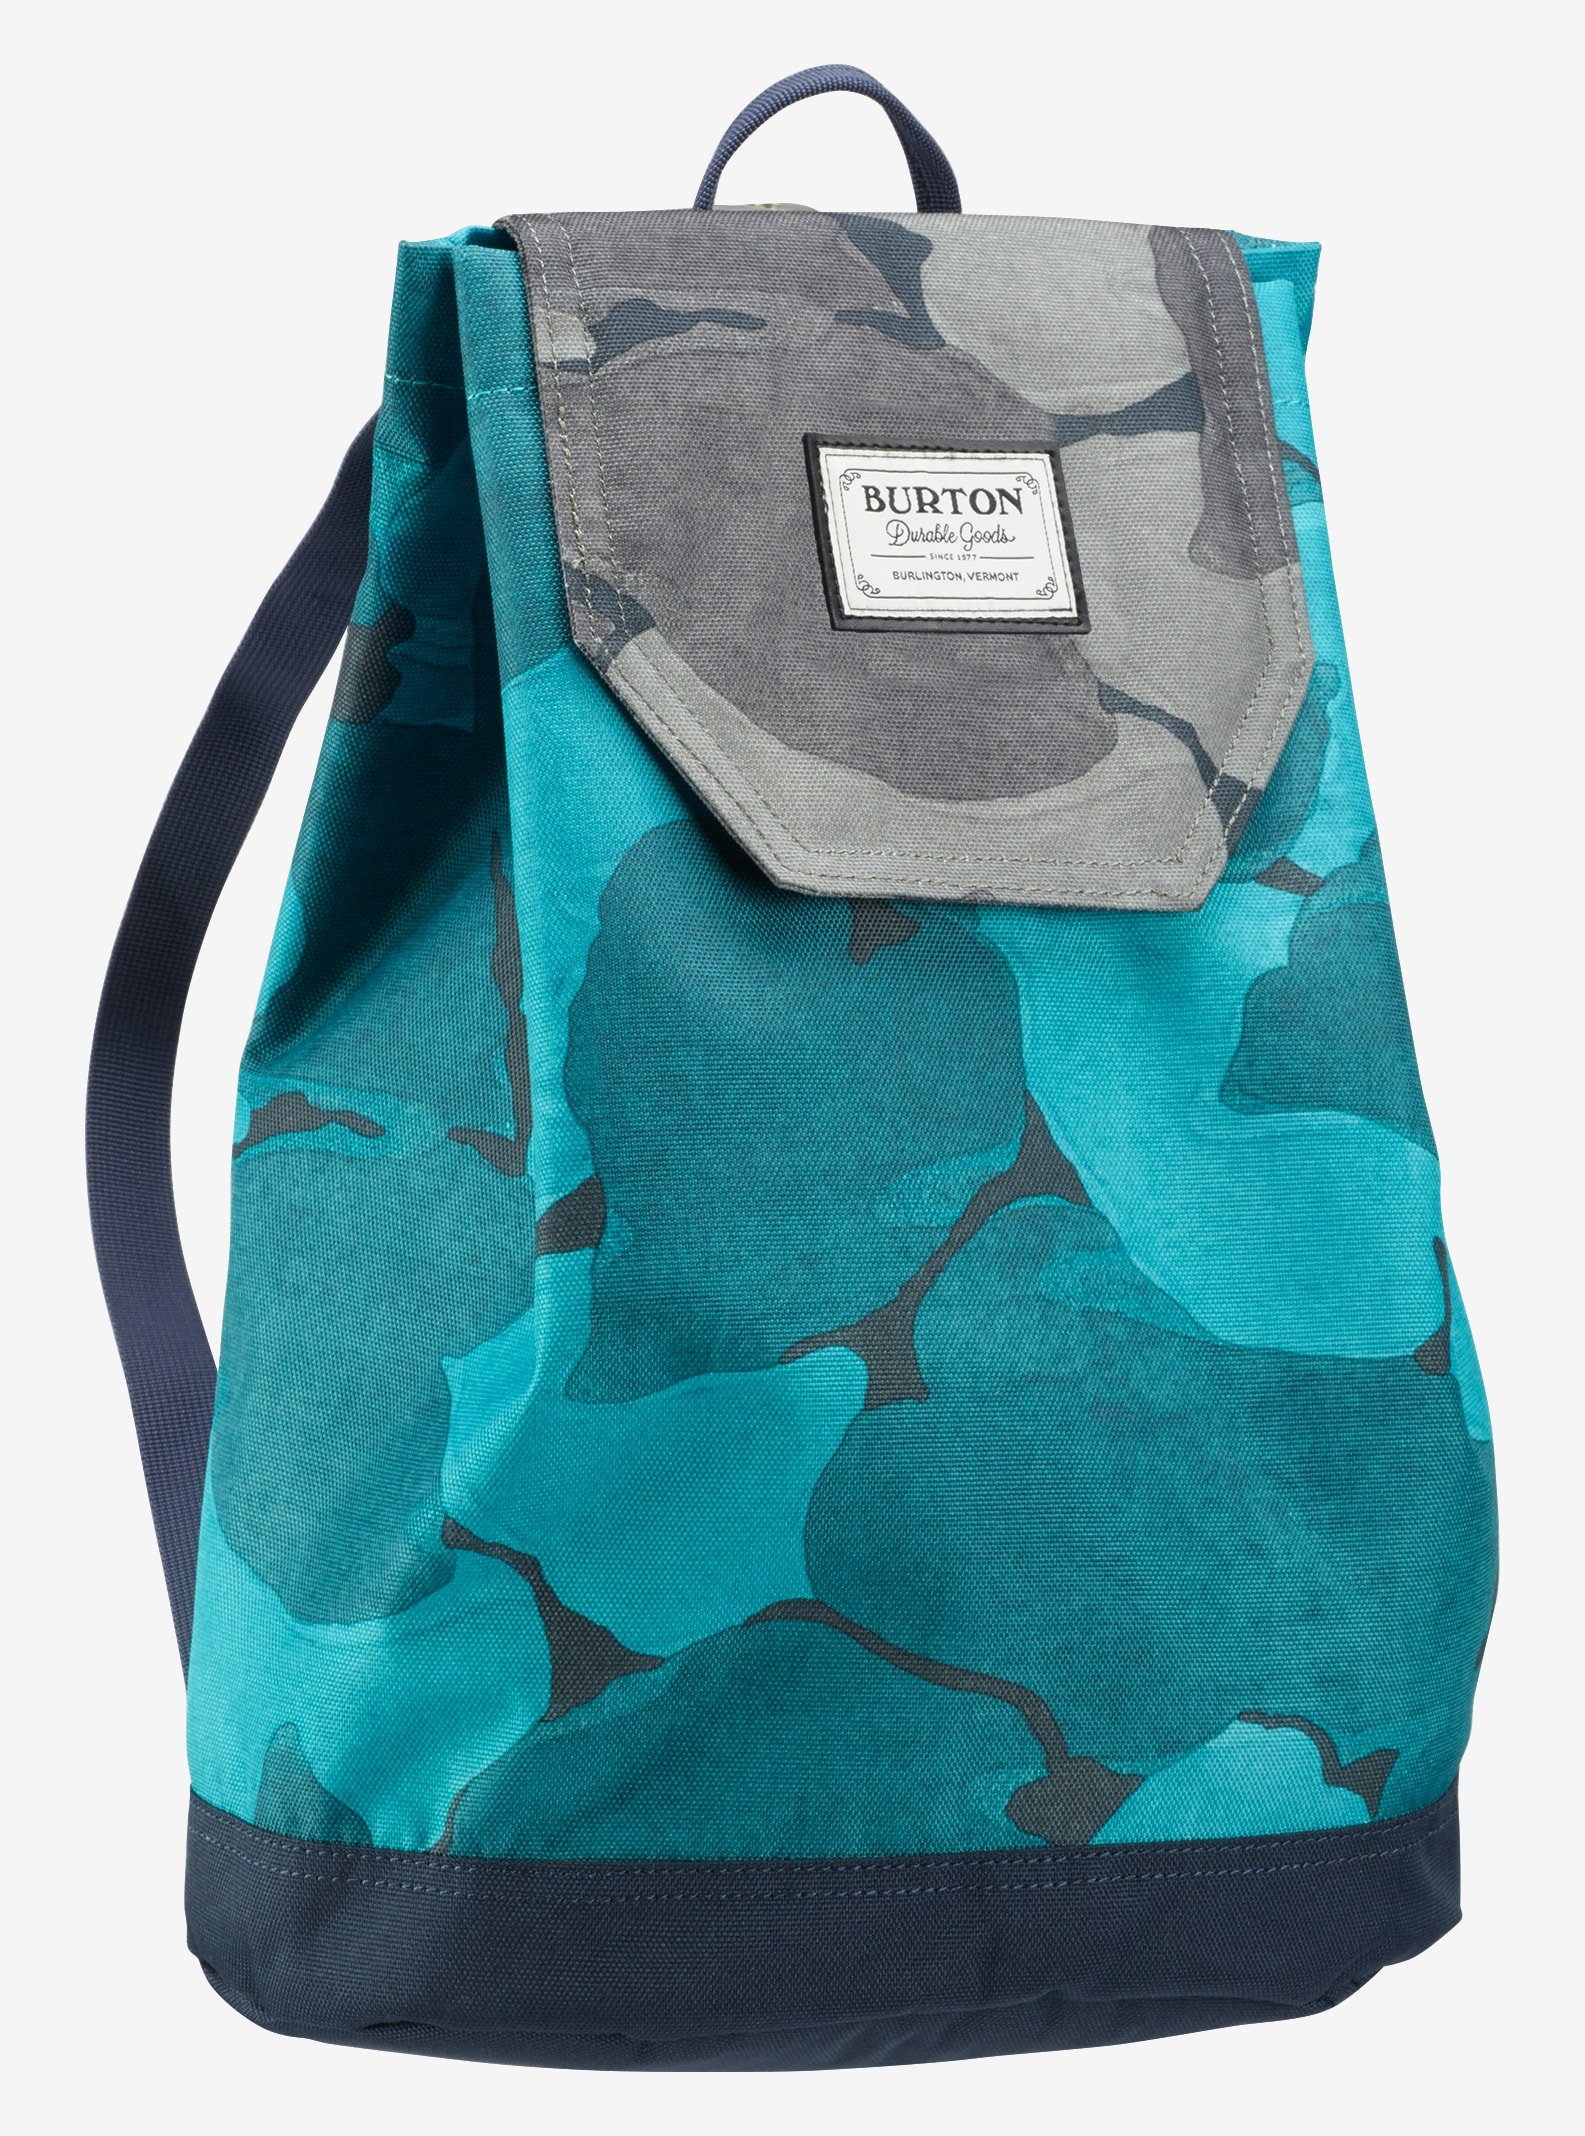 Burton Women's Parcel Backpack shown in Pond Camo Print